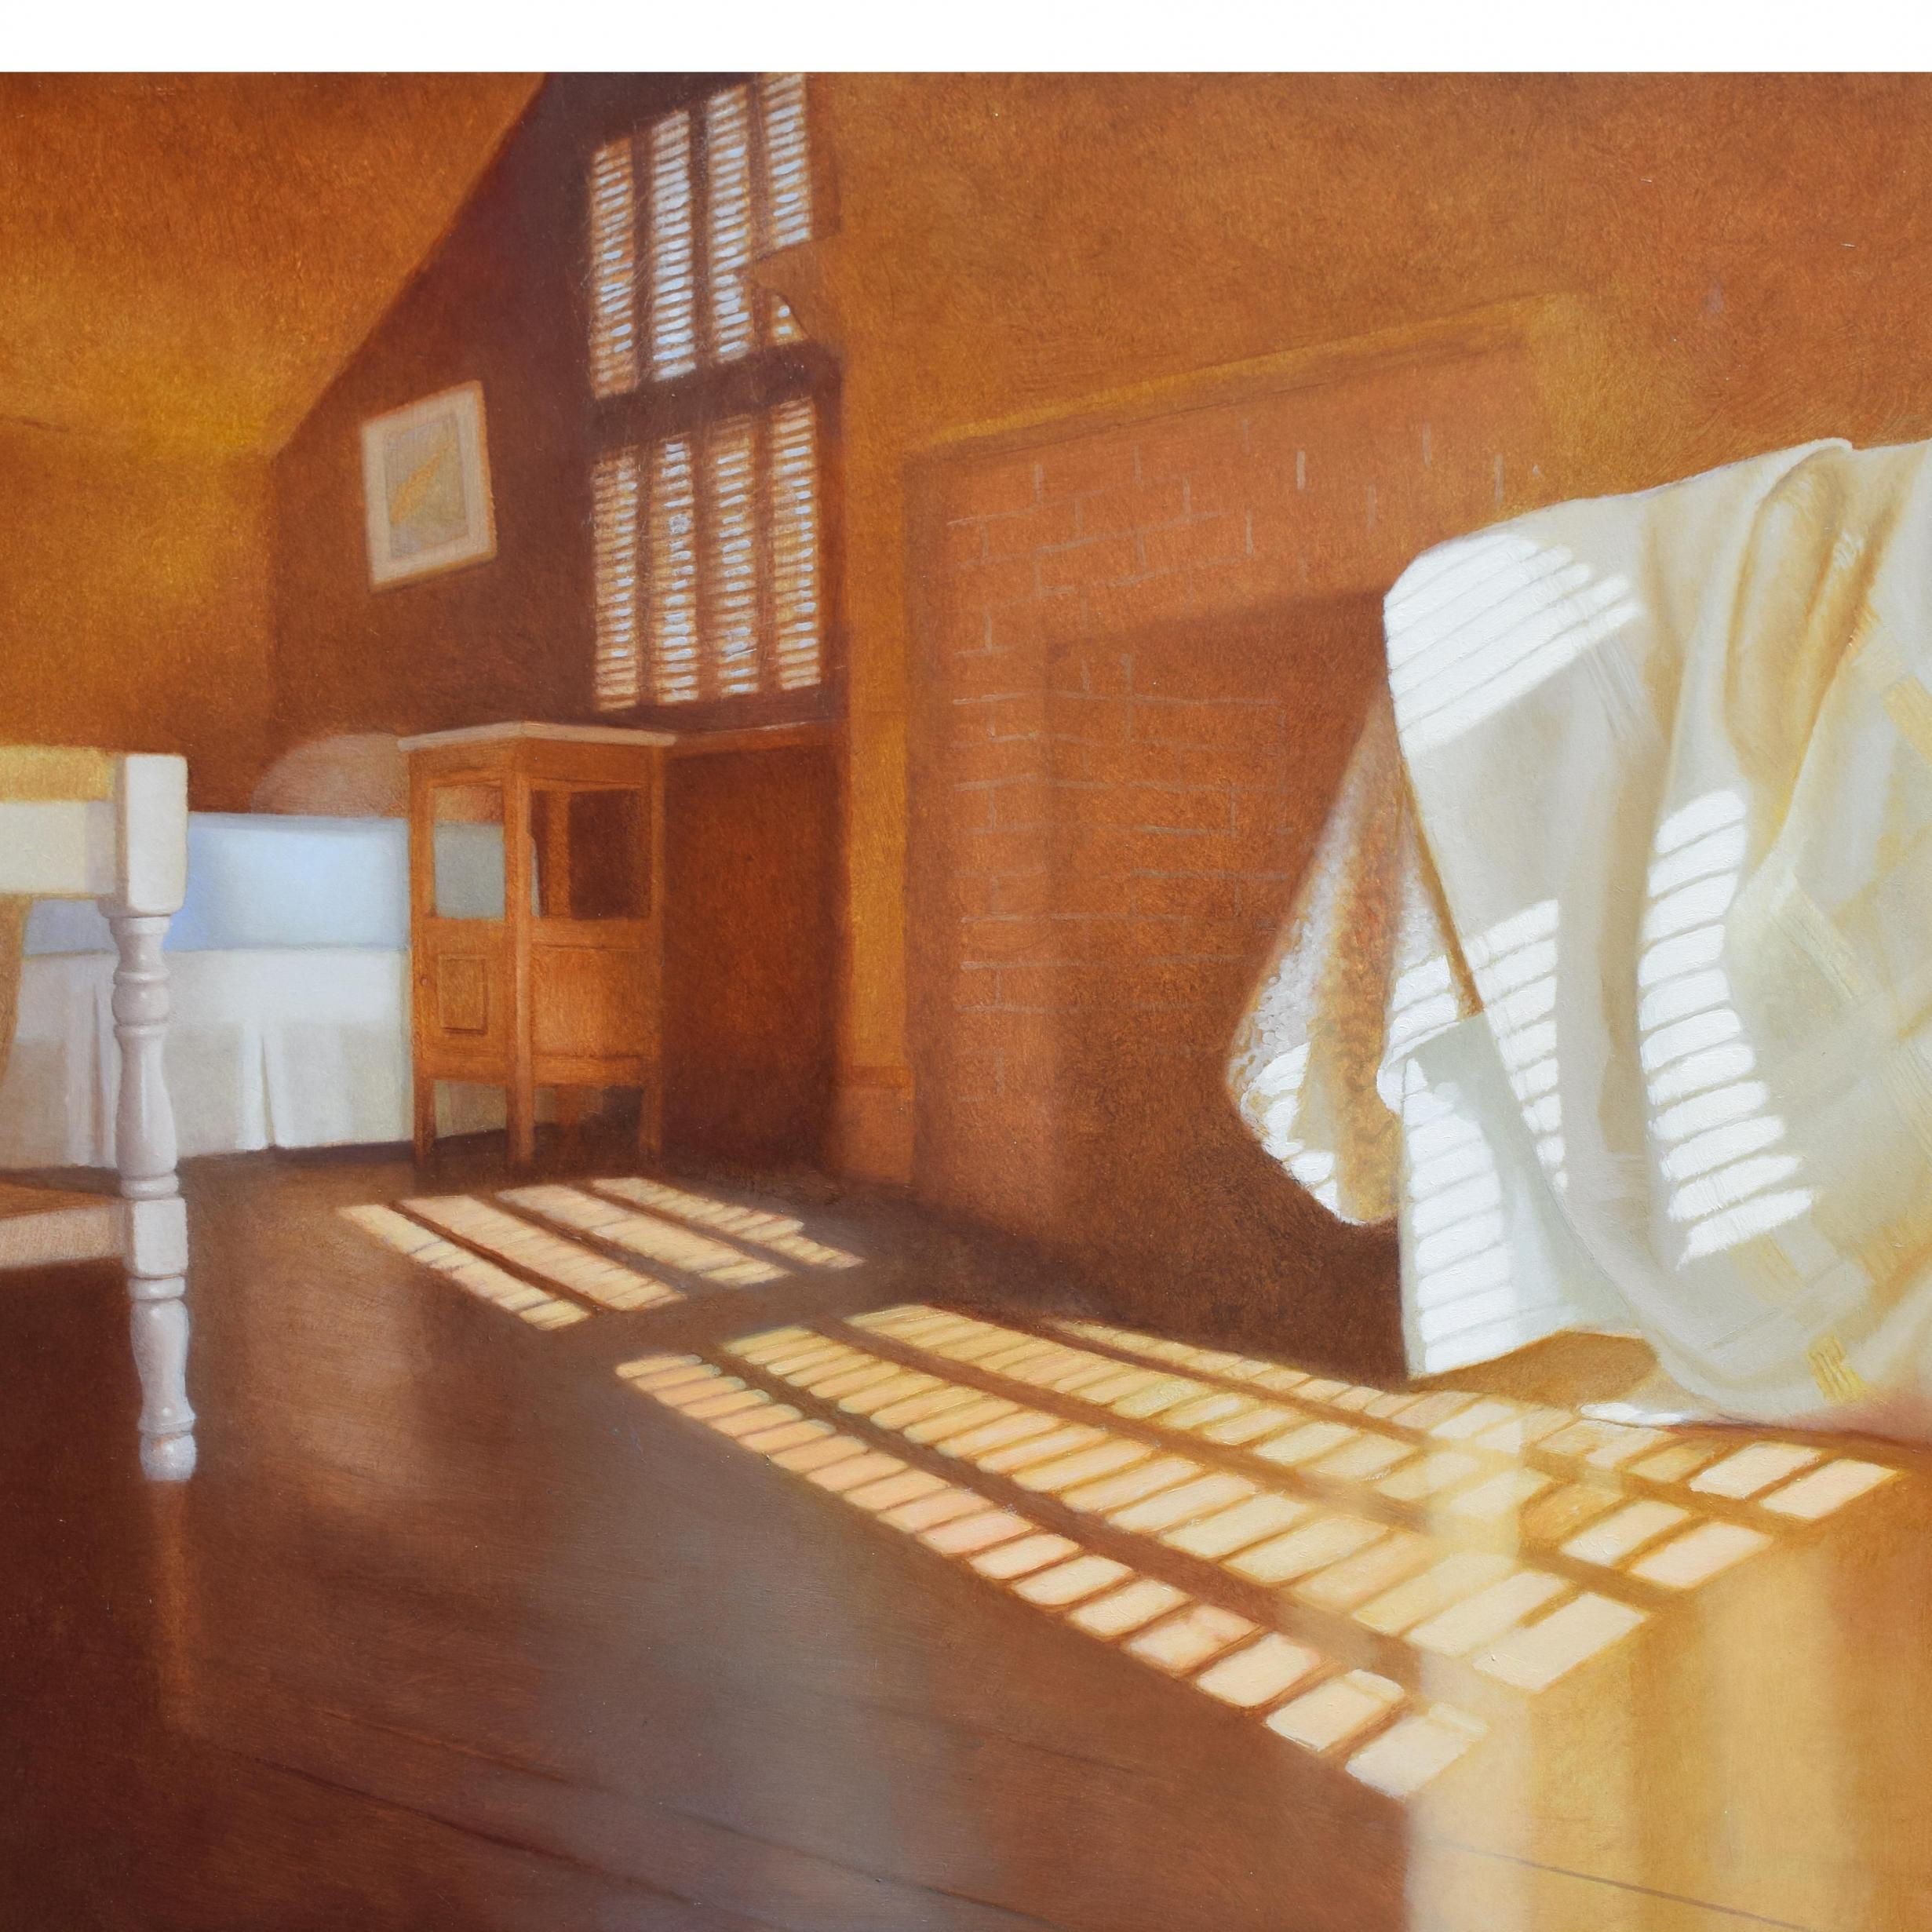 Baumgarten, North Room, 16 x 24 inches, oil on panel